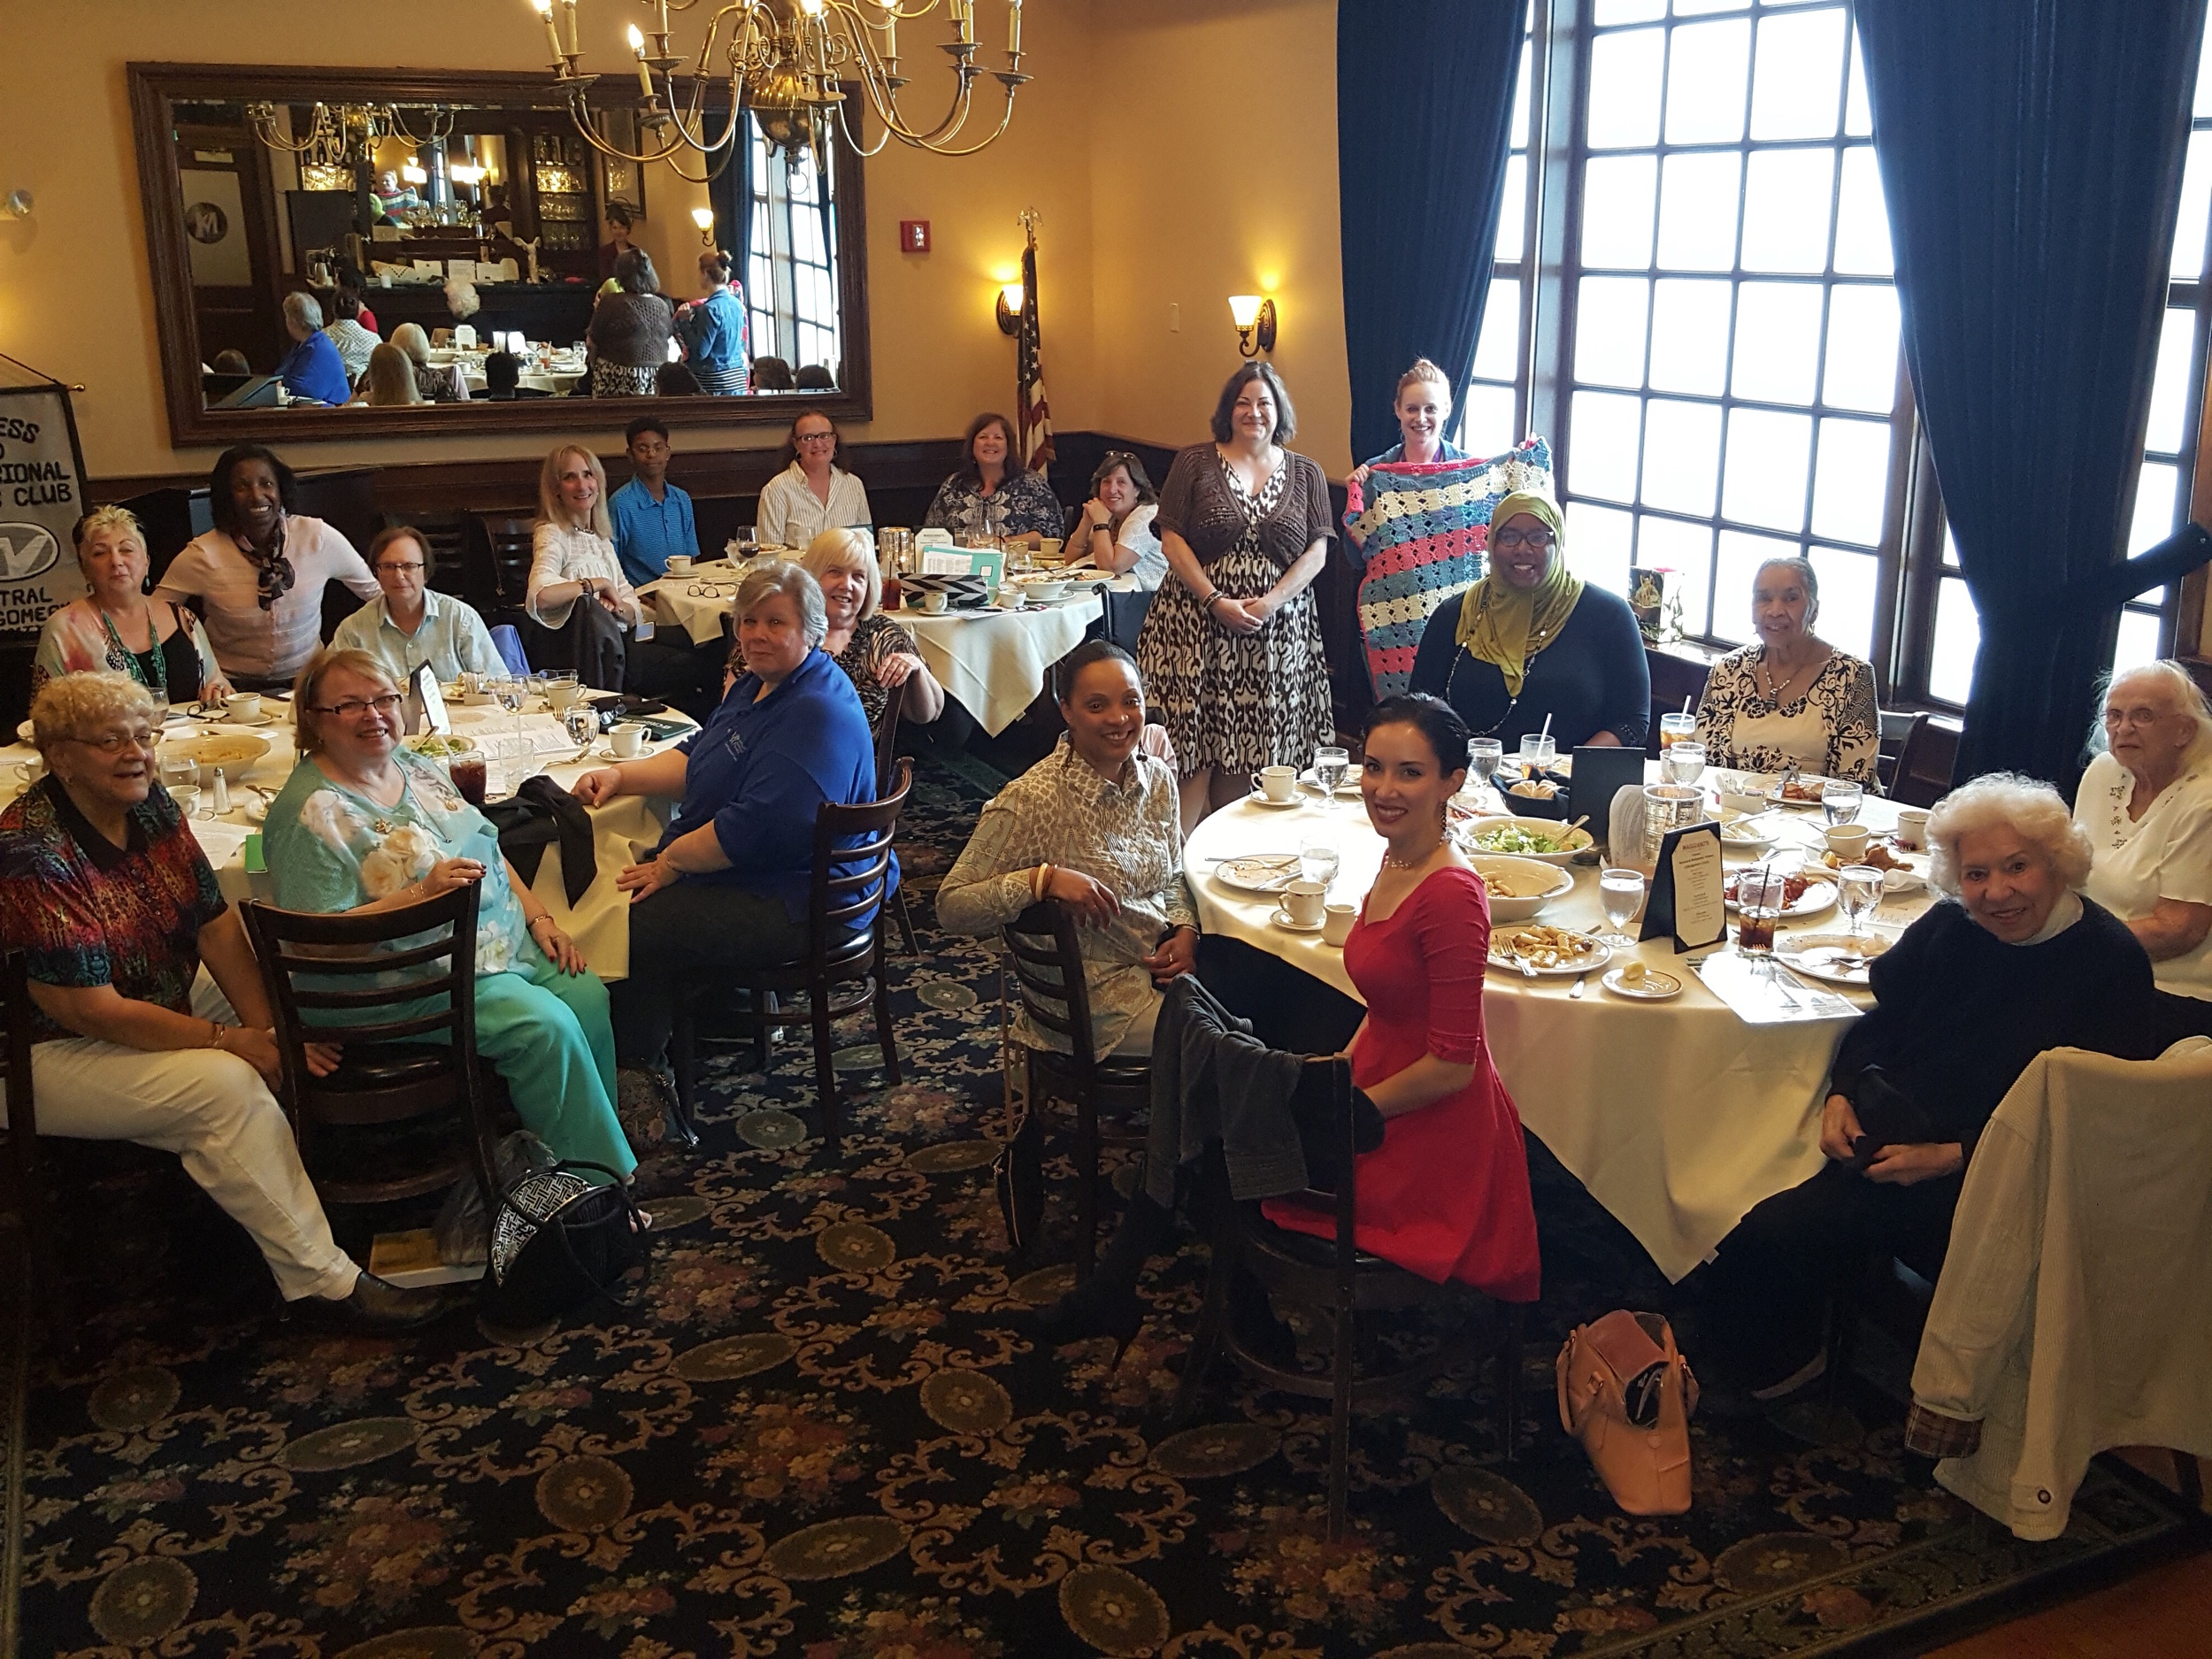 Central Montgomery County Business and Professional Women celebrated 92 years as The Voice of Working Women. Chartered in Norristown in 1927, the club promotes pay equity. For many years, the members have raised money for high risk babies throughout the county. ( standing right) Guest speaker, Megan Anteperra, from Einstein's Health Initiative Cribs for Kids program, is with club president Becky Shoulberg and members.